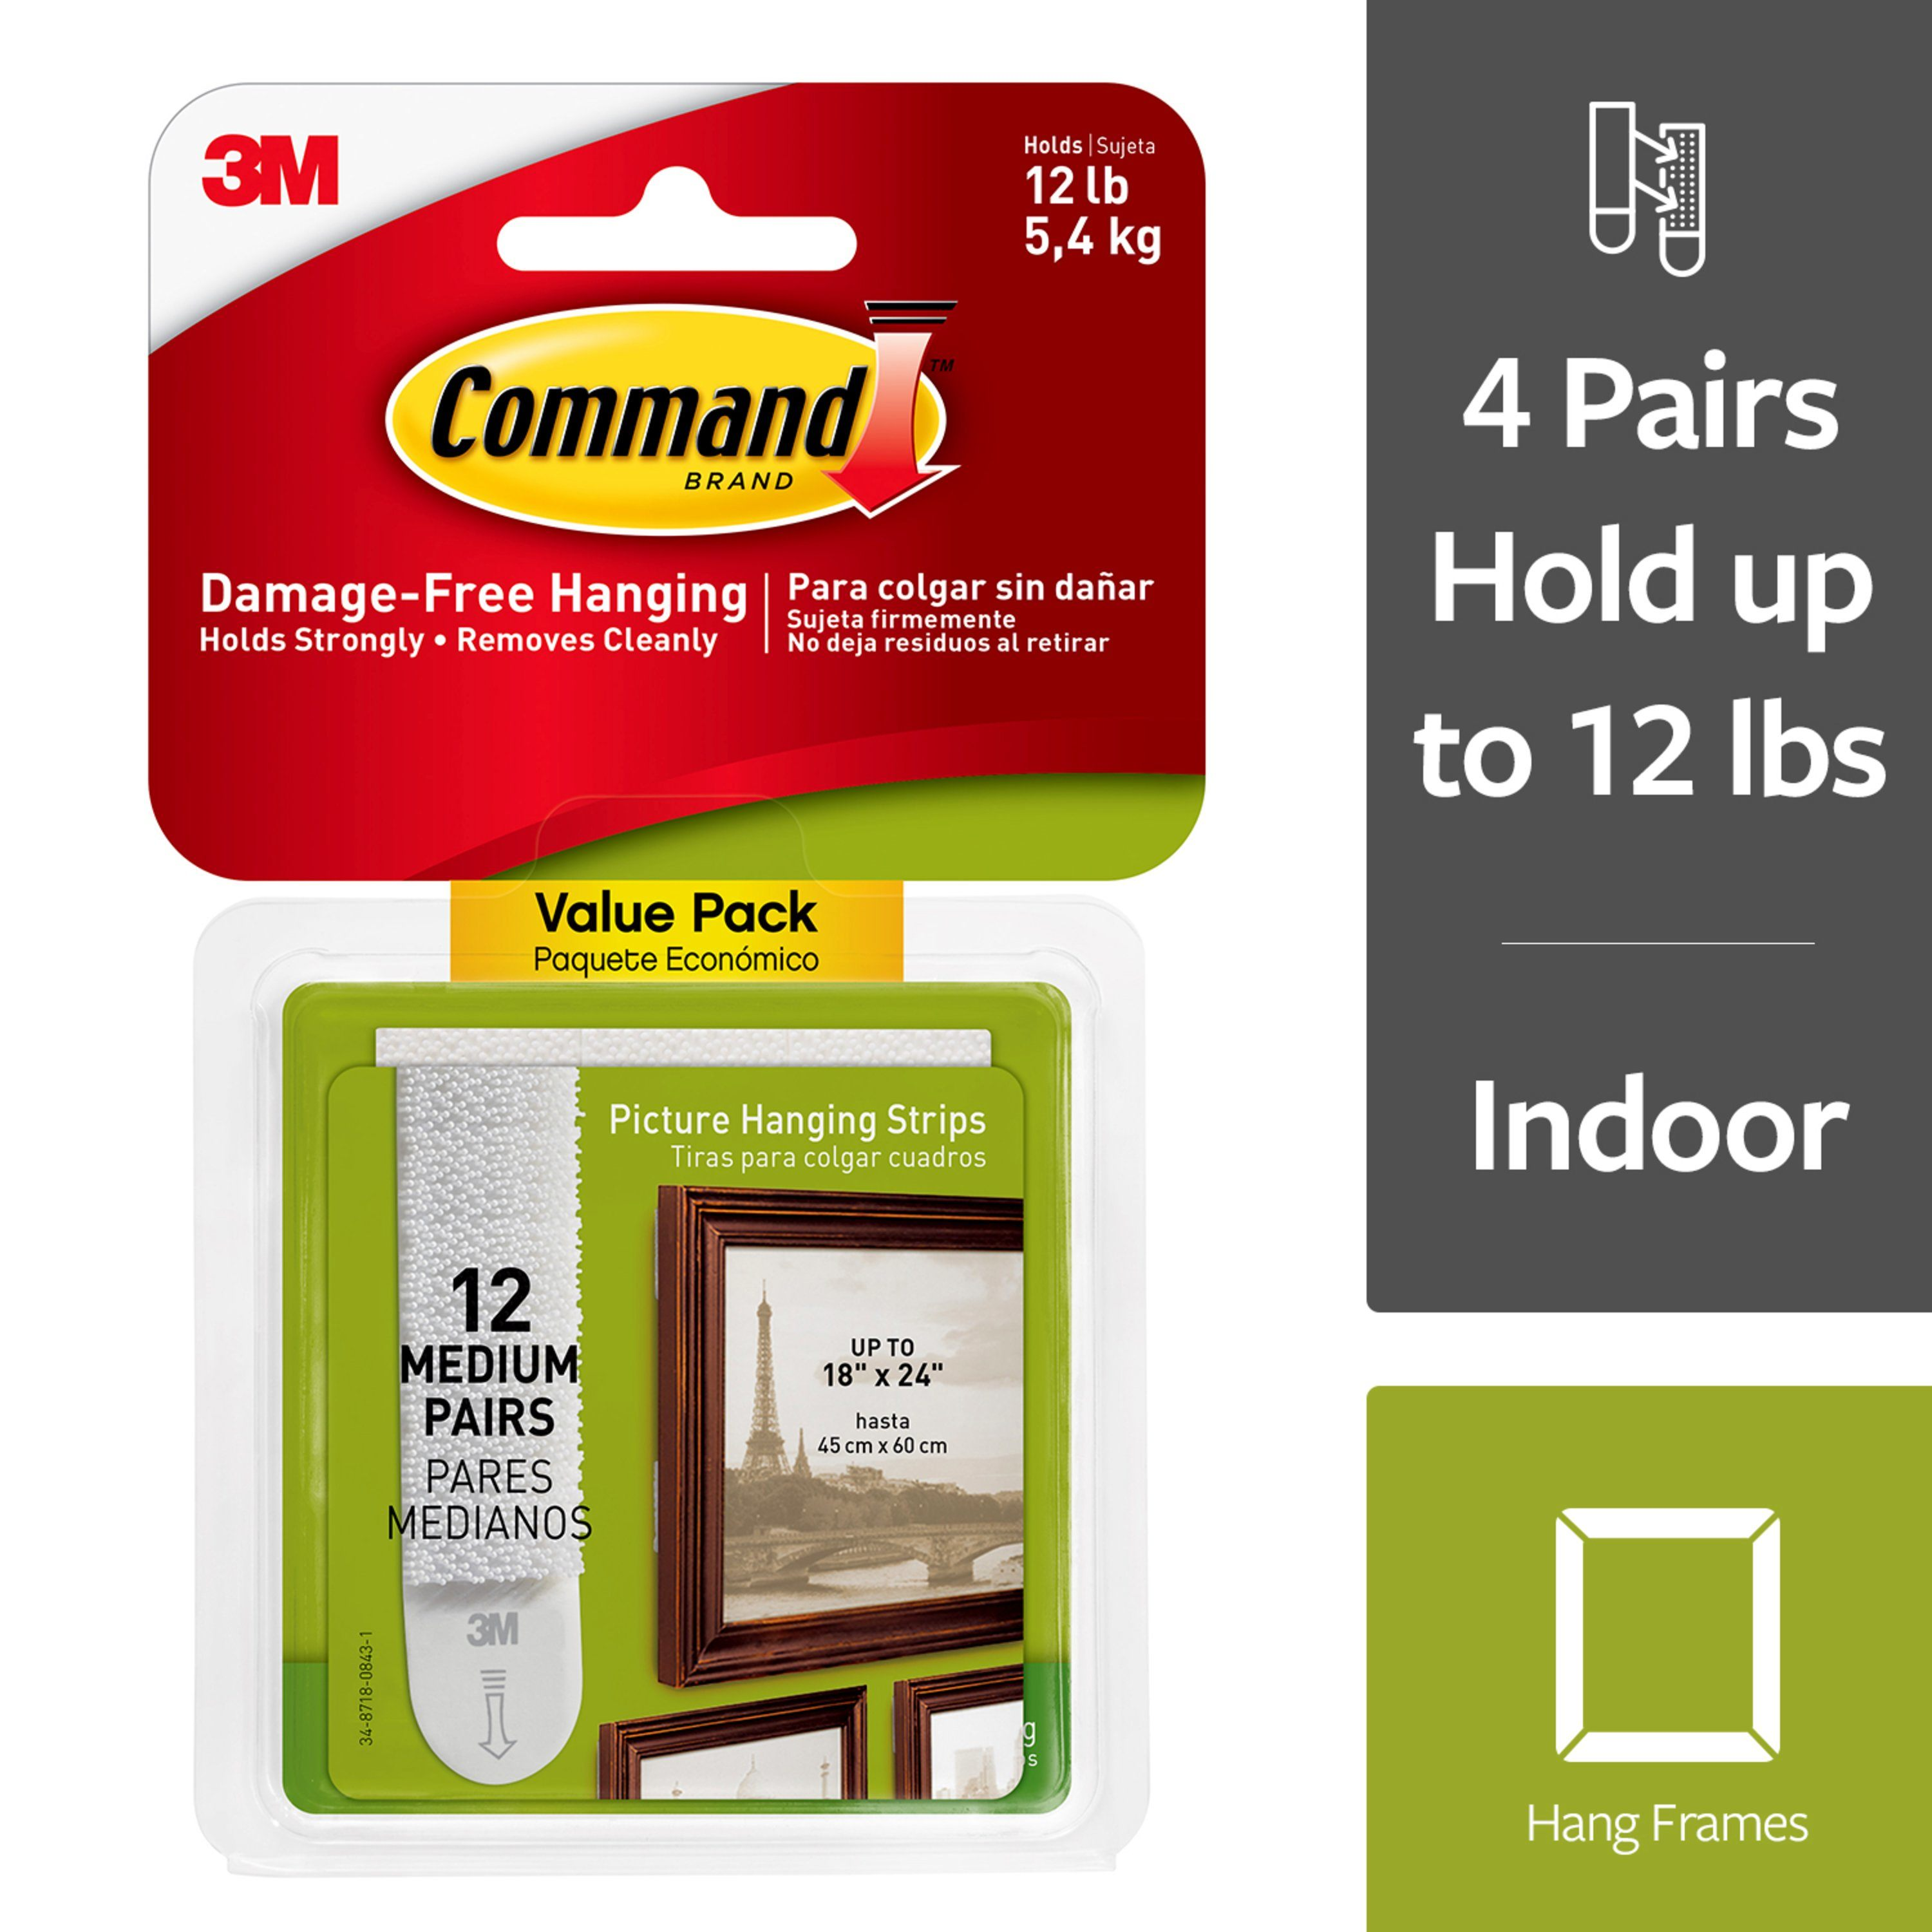 3M Command Picture Hanging Strips, Decorate and Hang Damage-Free, Create Wall Collages, Hangs up to 6 frames